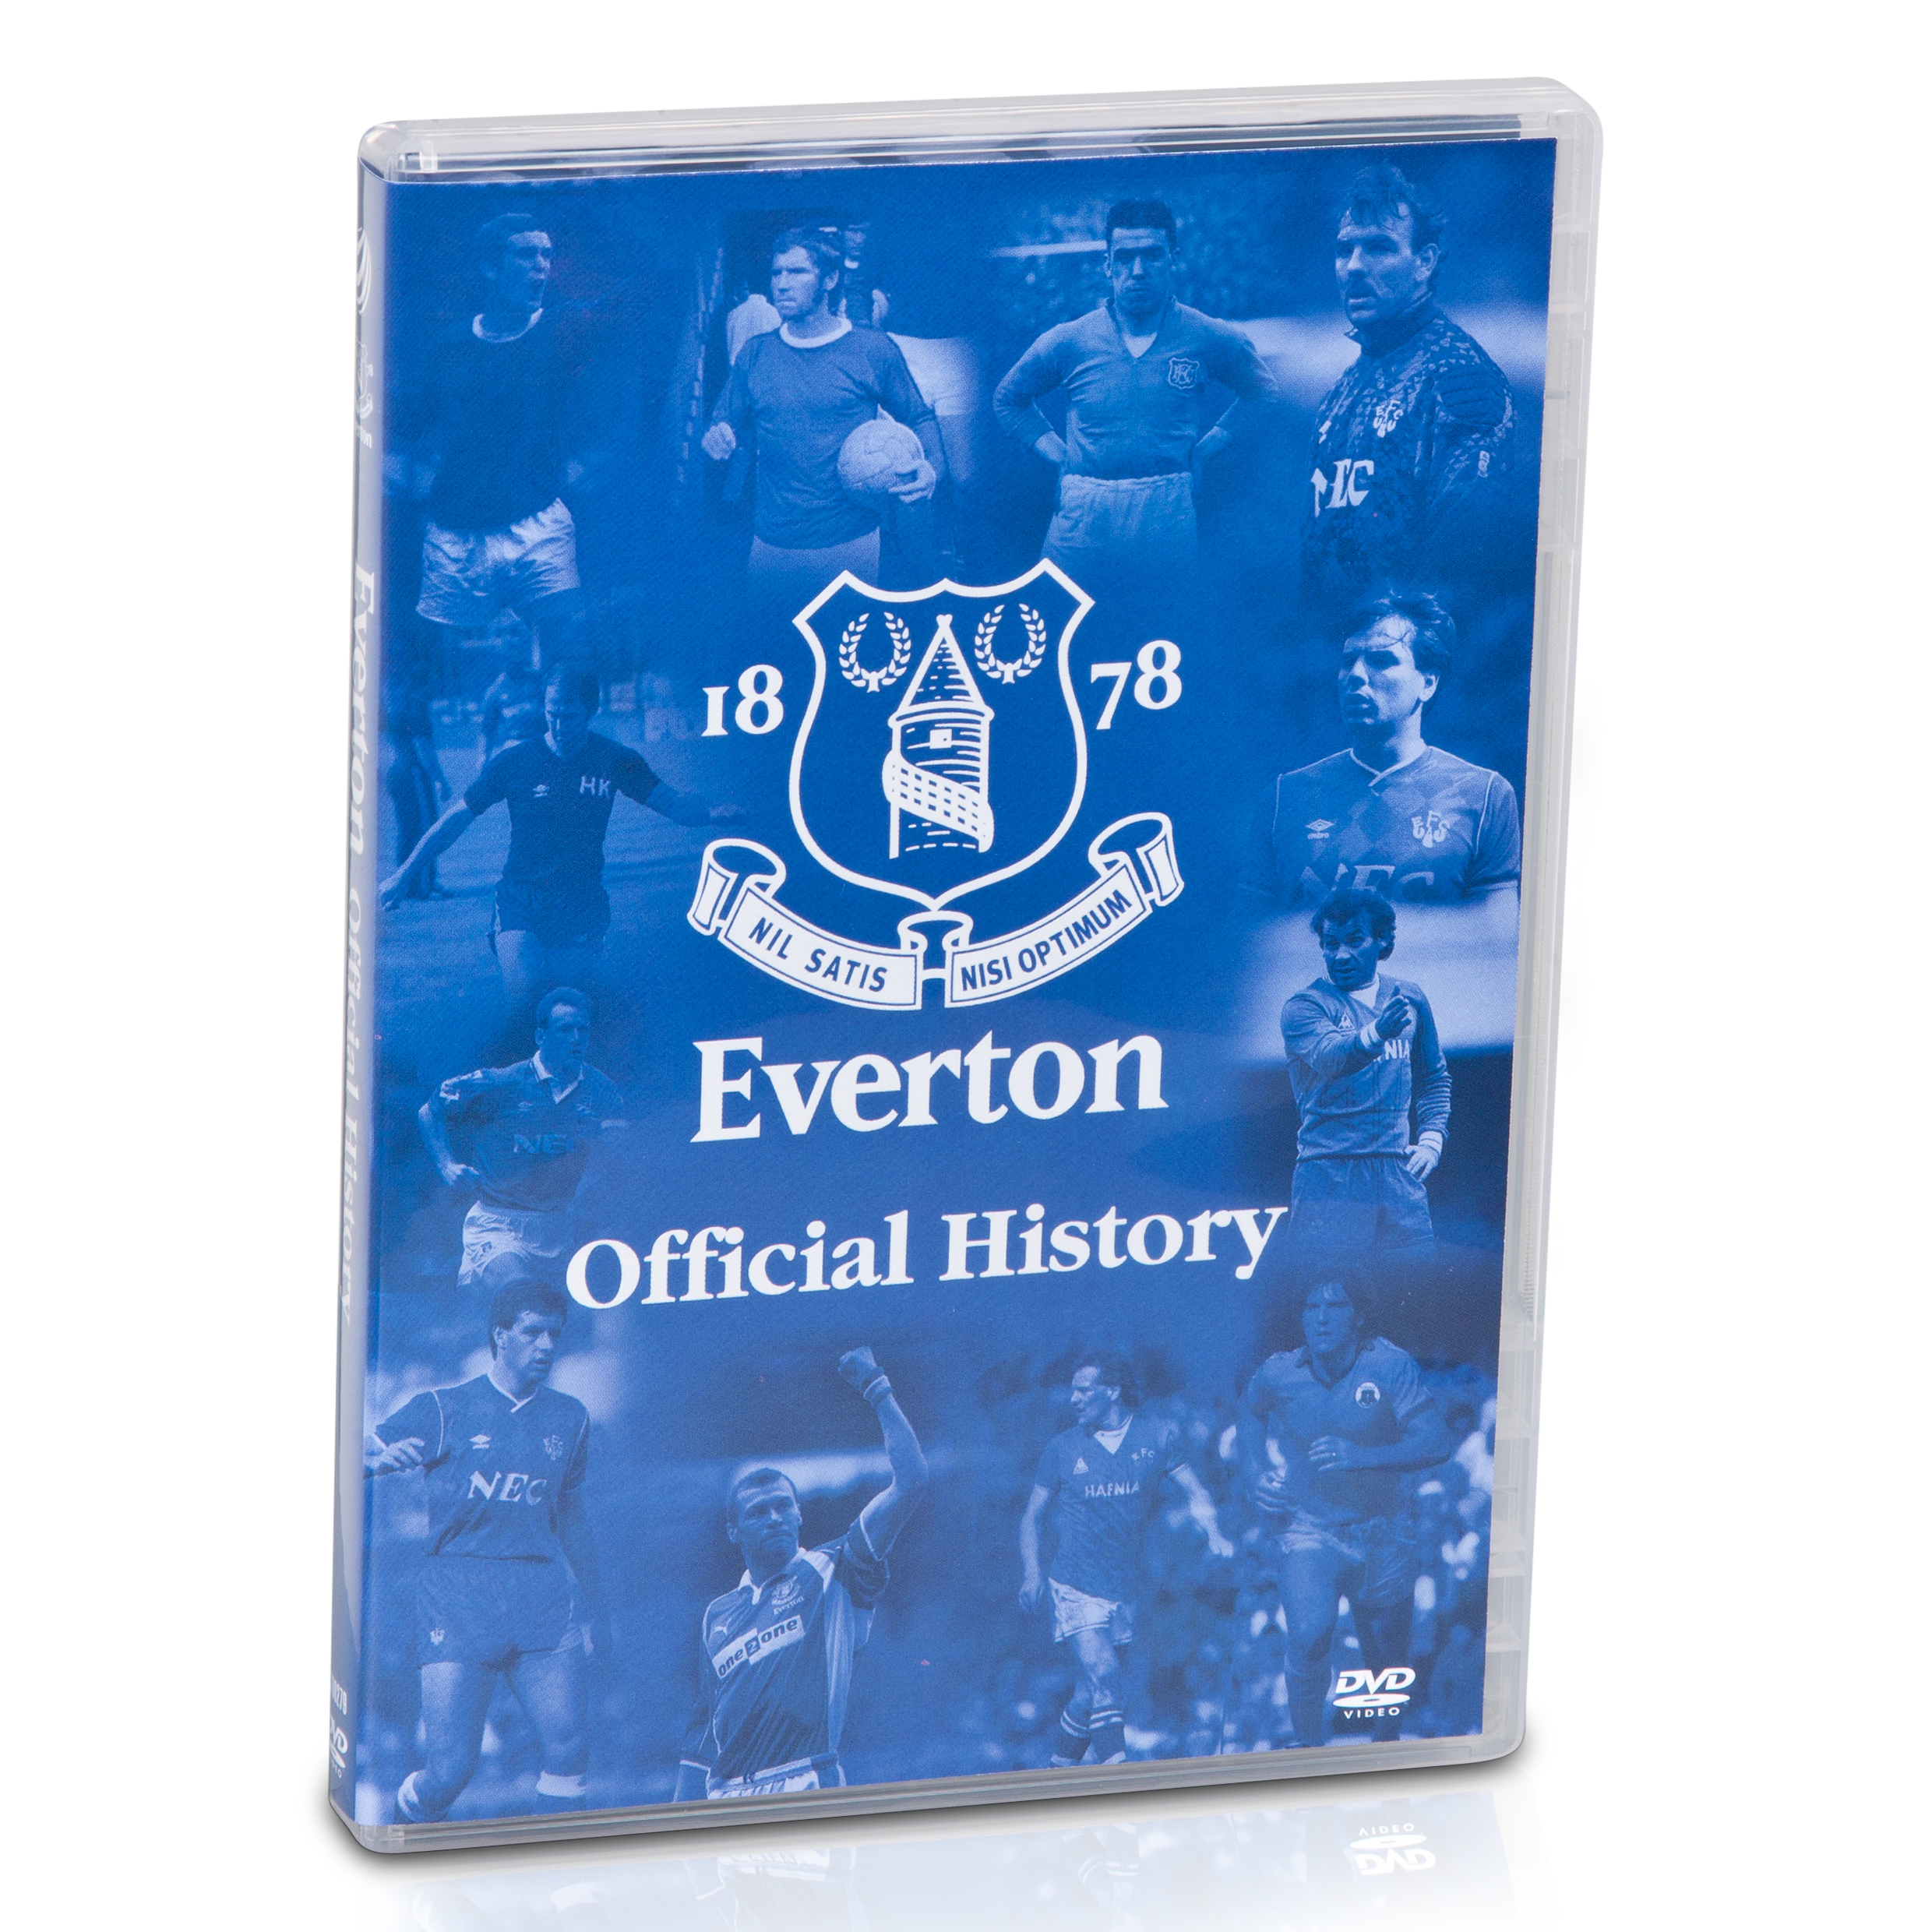 Everton - The Official History DVD